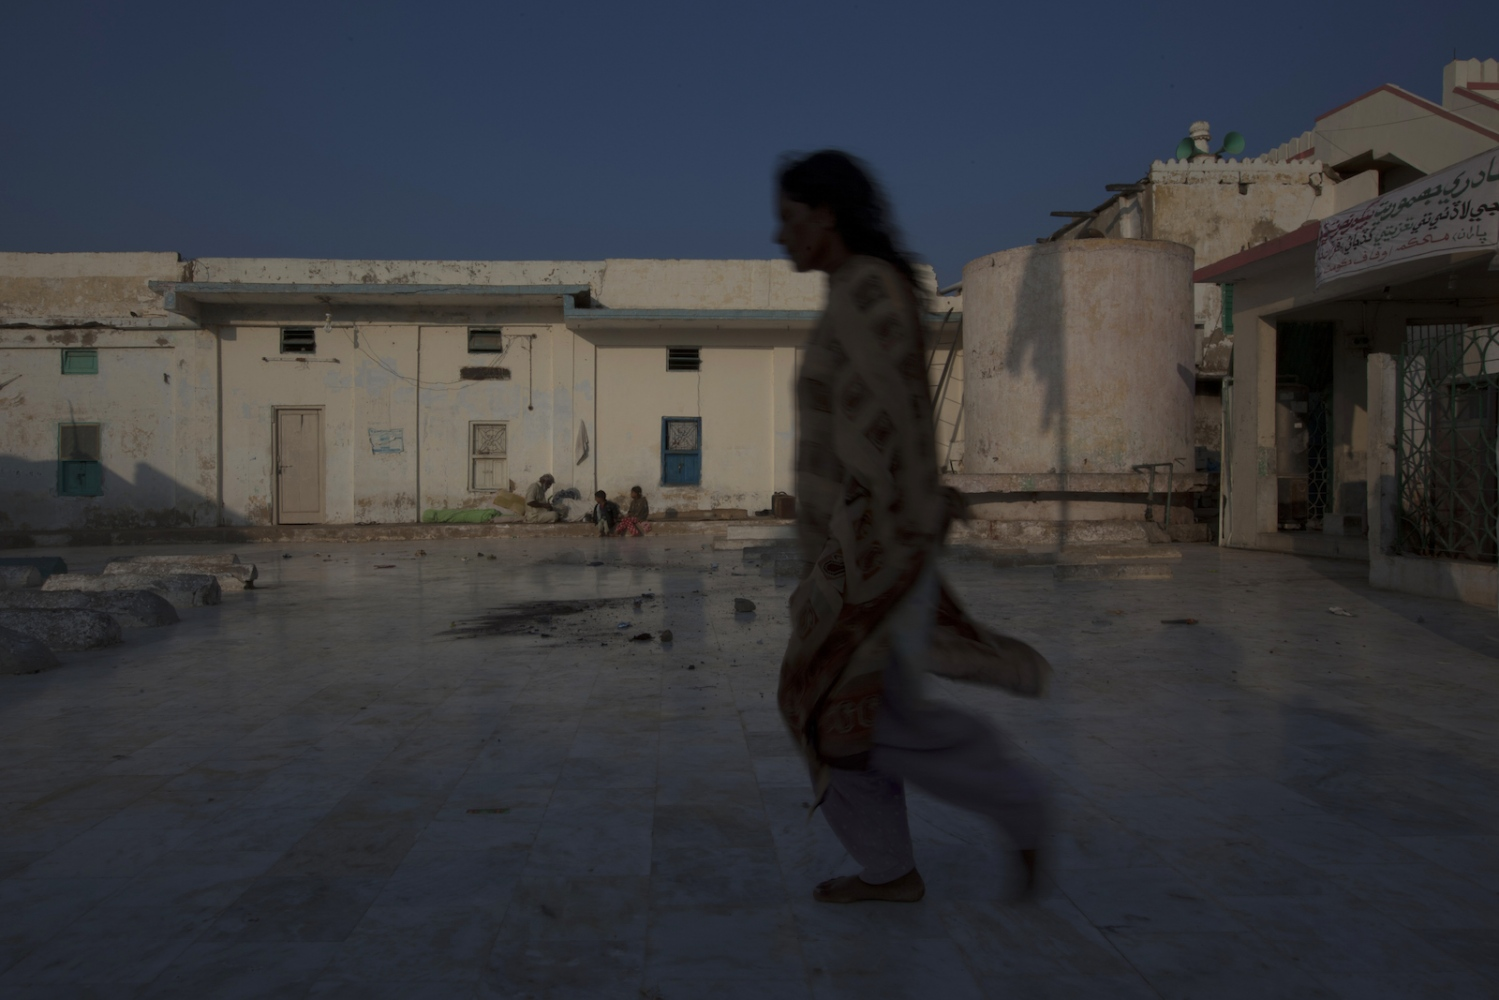 A Pakistani resident believed to be possessed by a demon paces inside the shrine of spiritual leader Hazrat Abdullah Shah Ashabi in Makli in the district of Thatta in Pakistan's Sindh province on November 25, 2011.